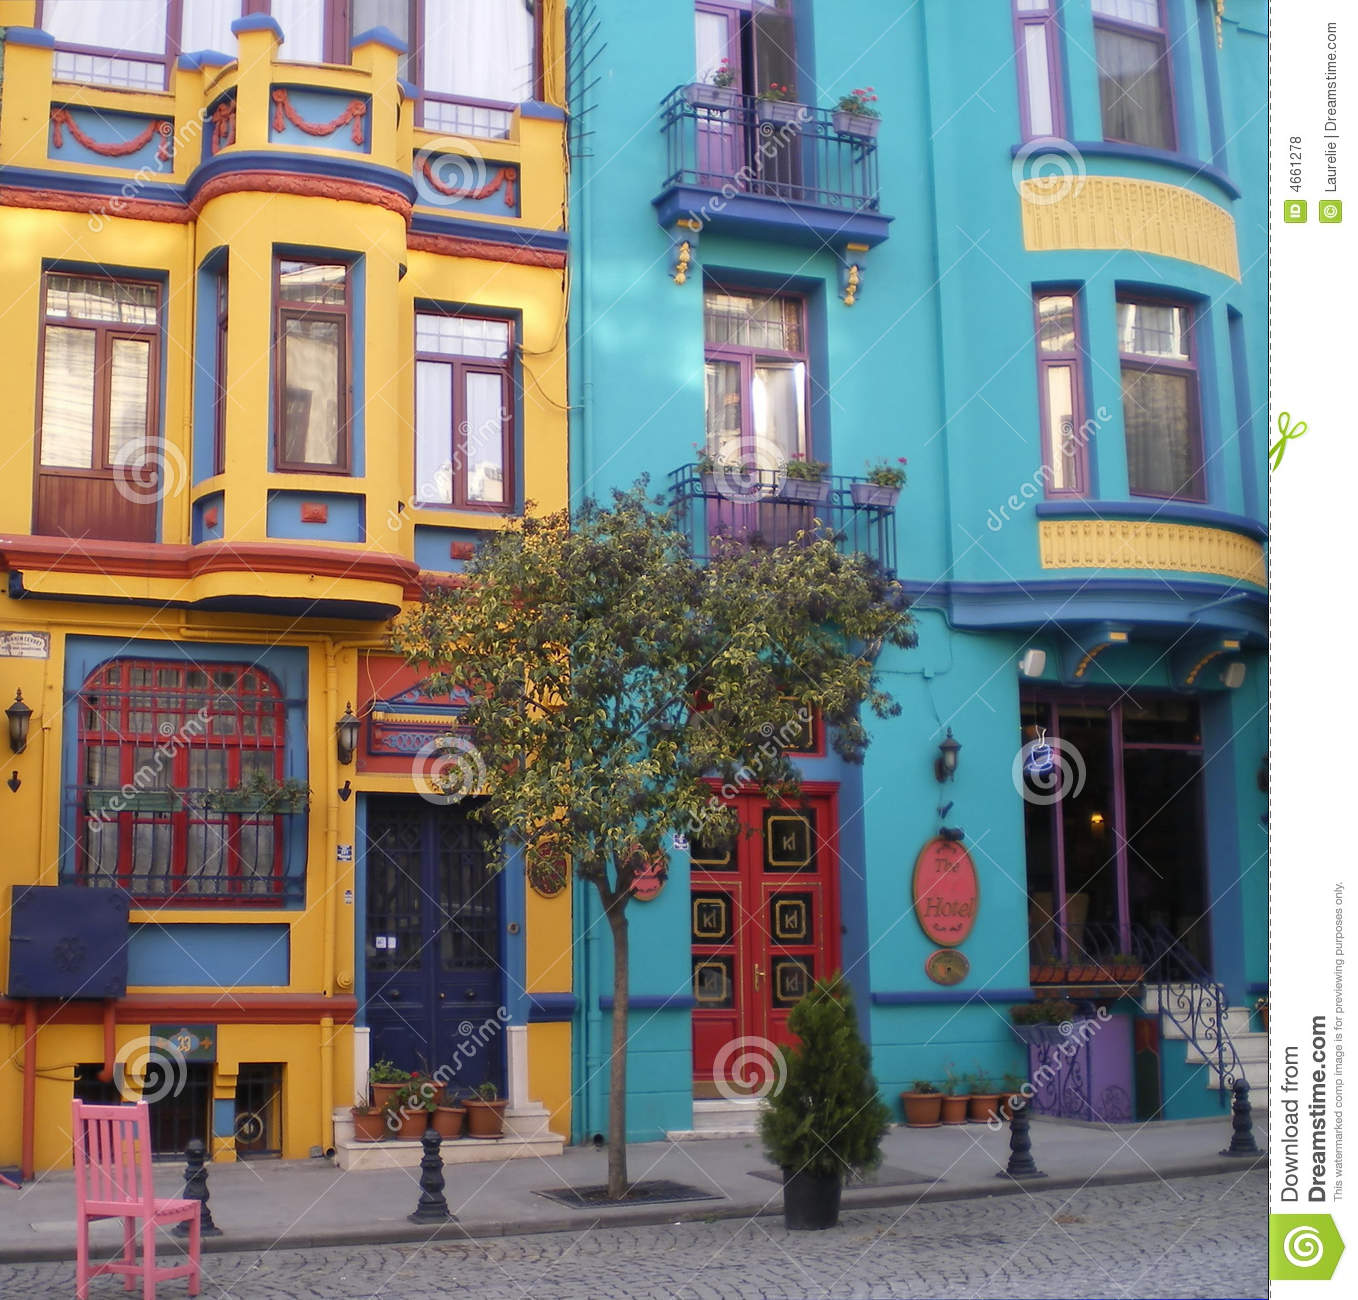 Colorful houses istanbul stock photo image of for Colorful tree house